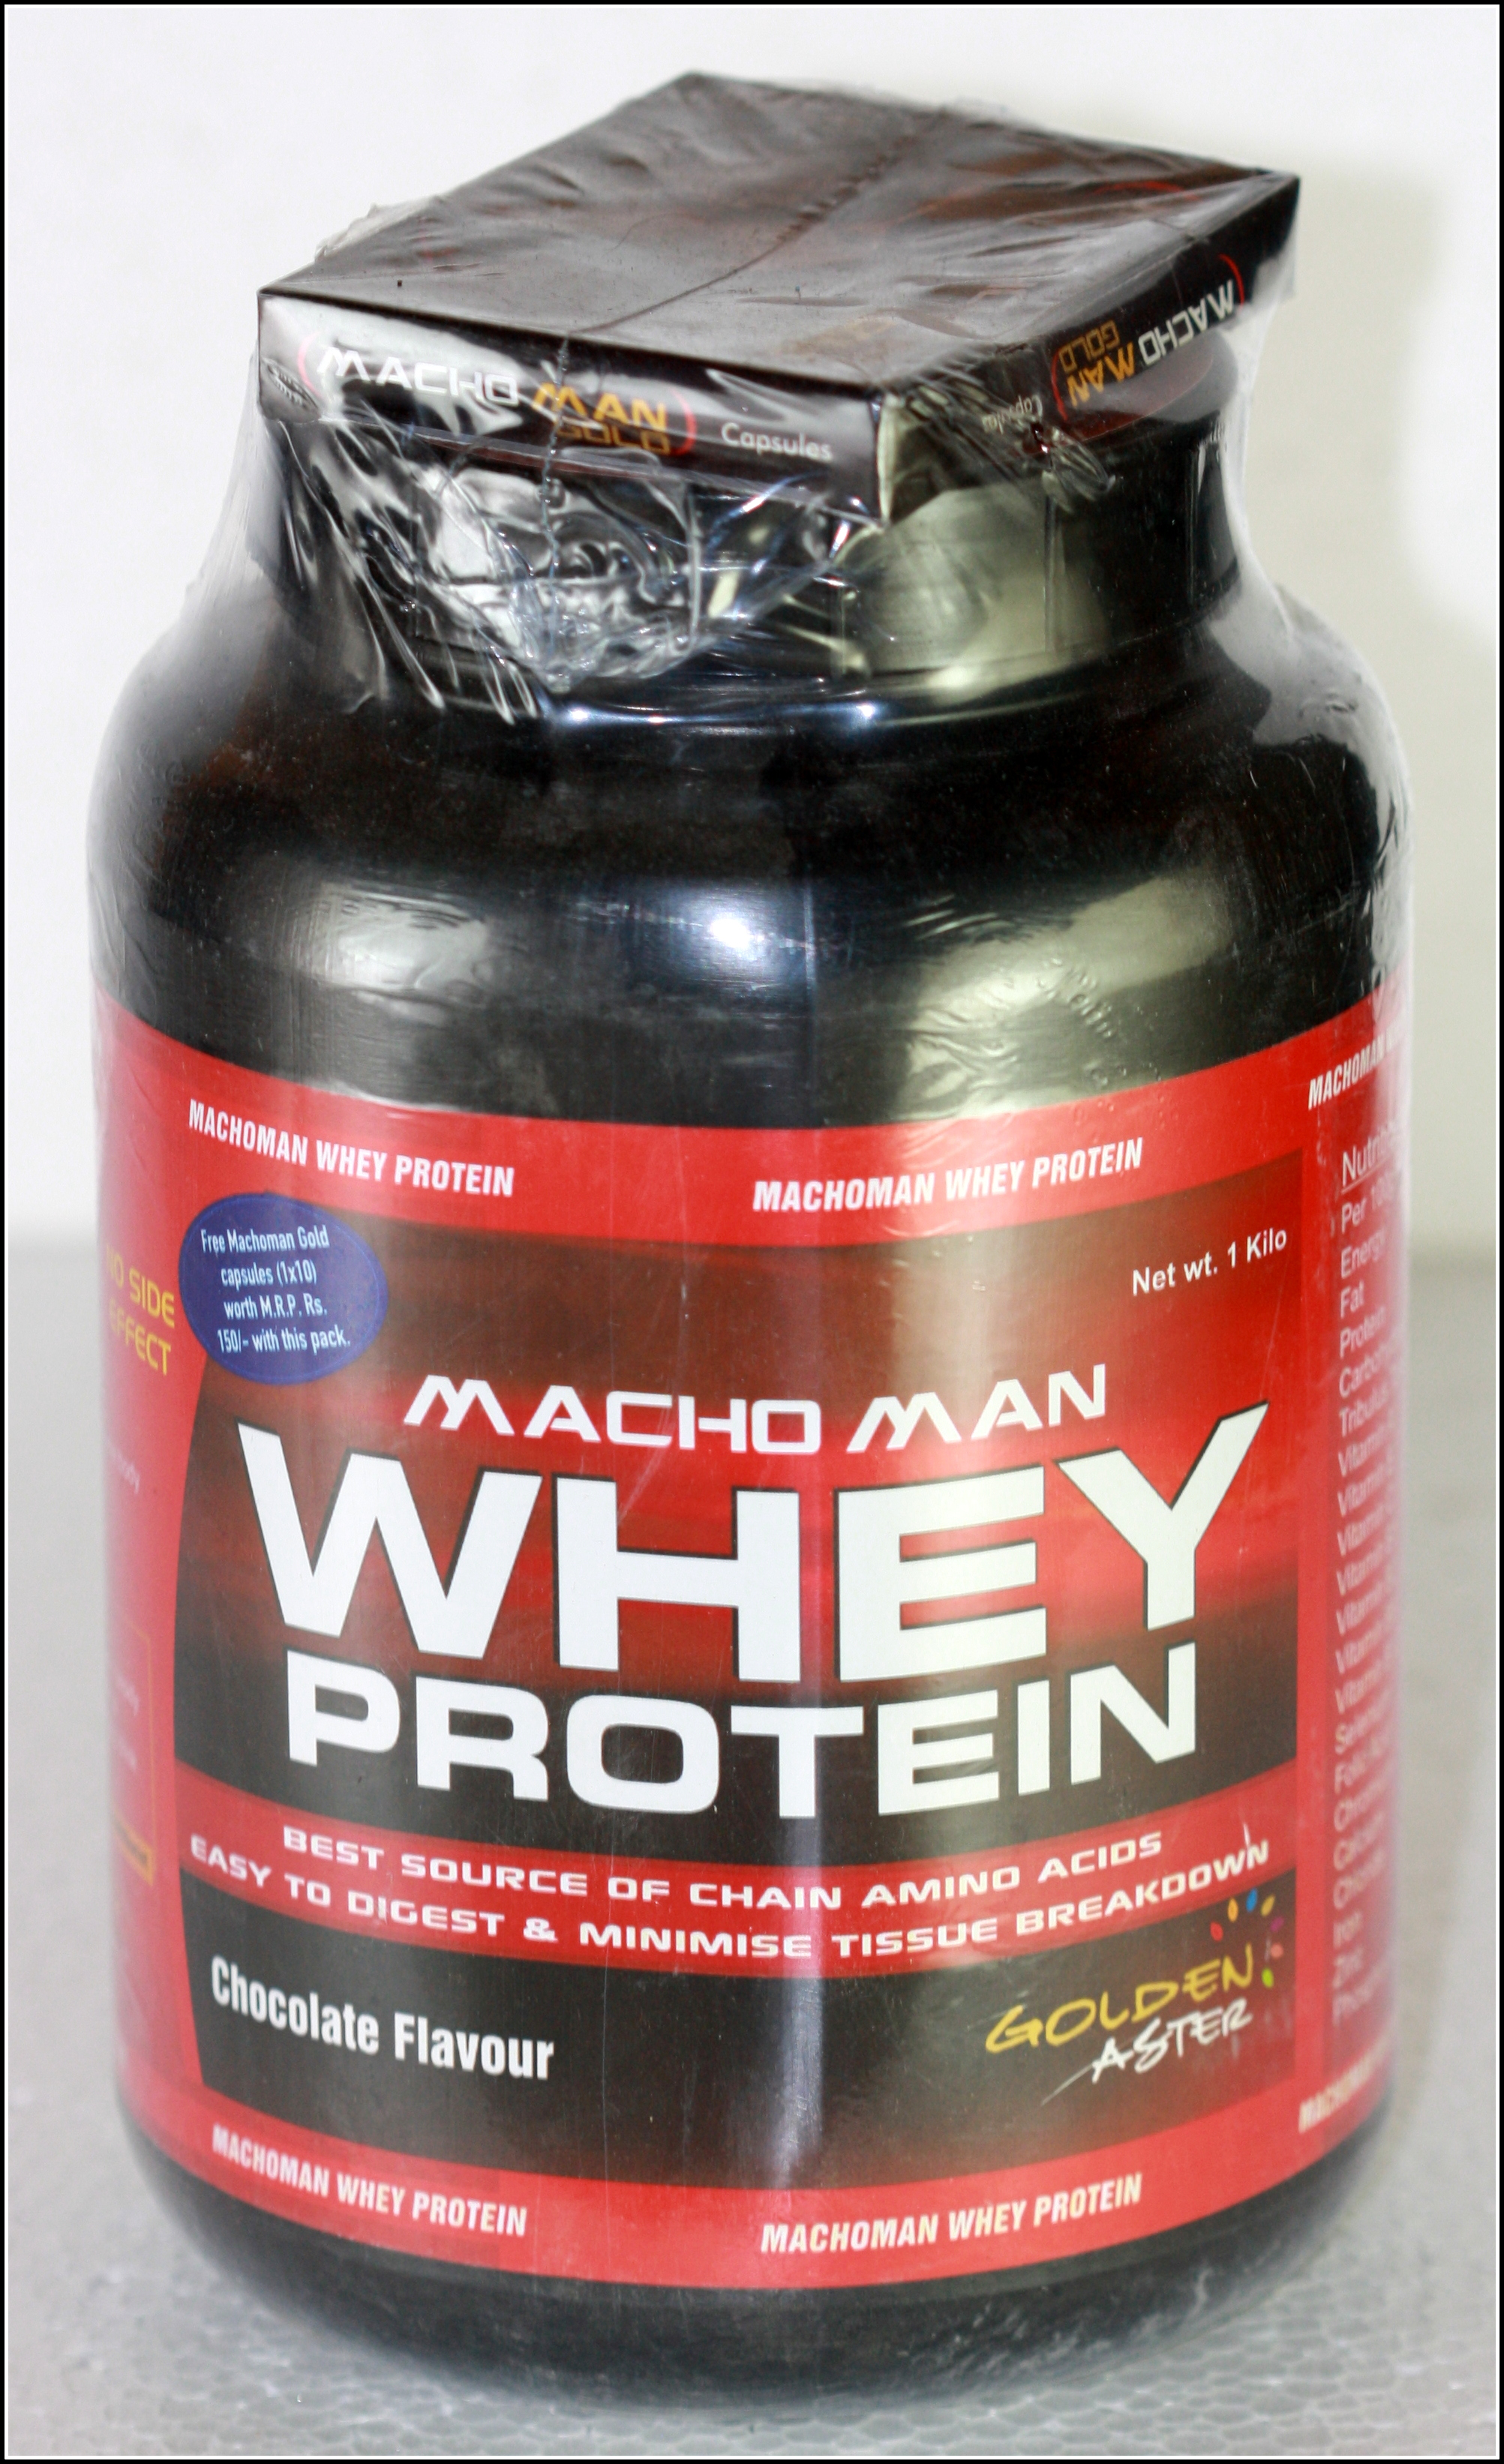 MACHO MAN WHEY PROTEIN